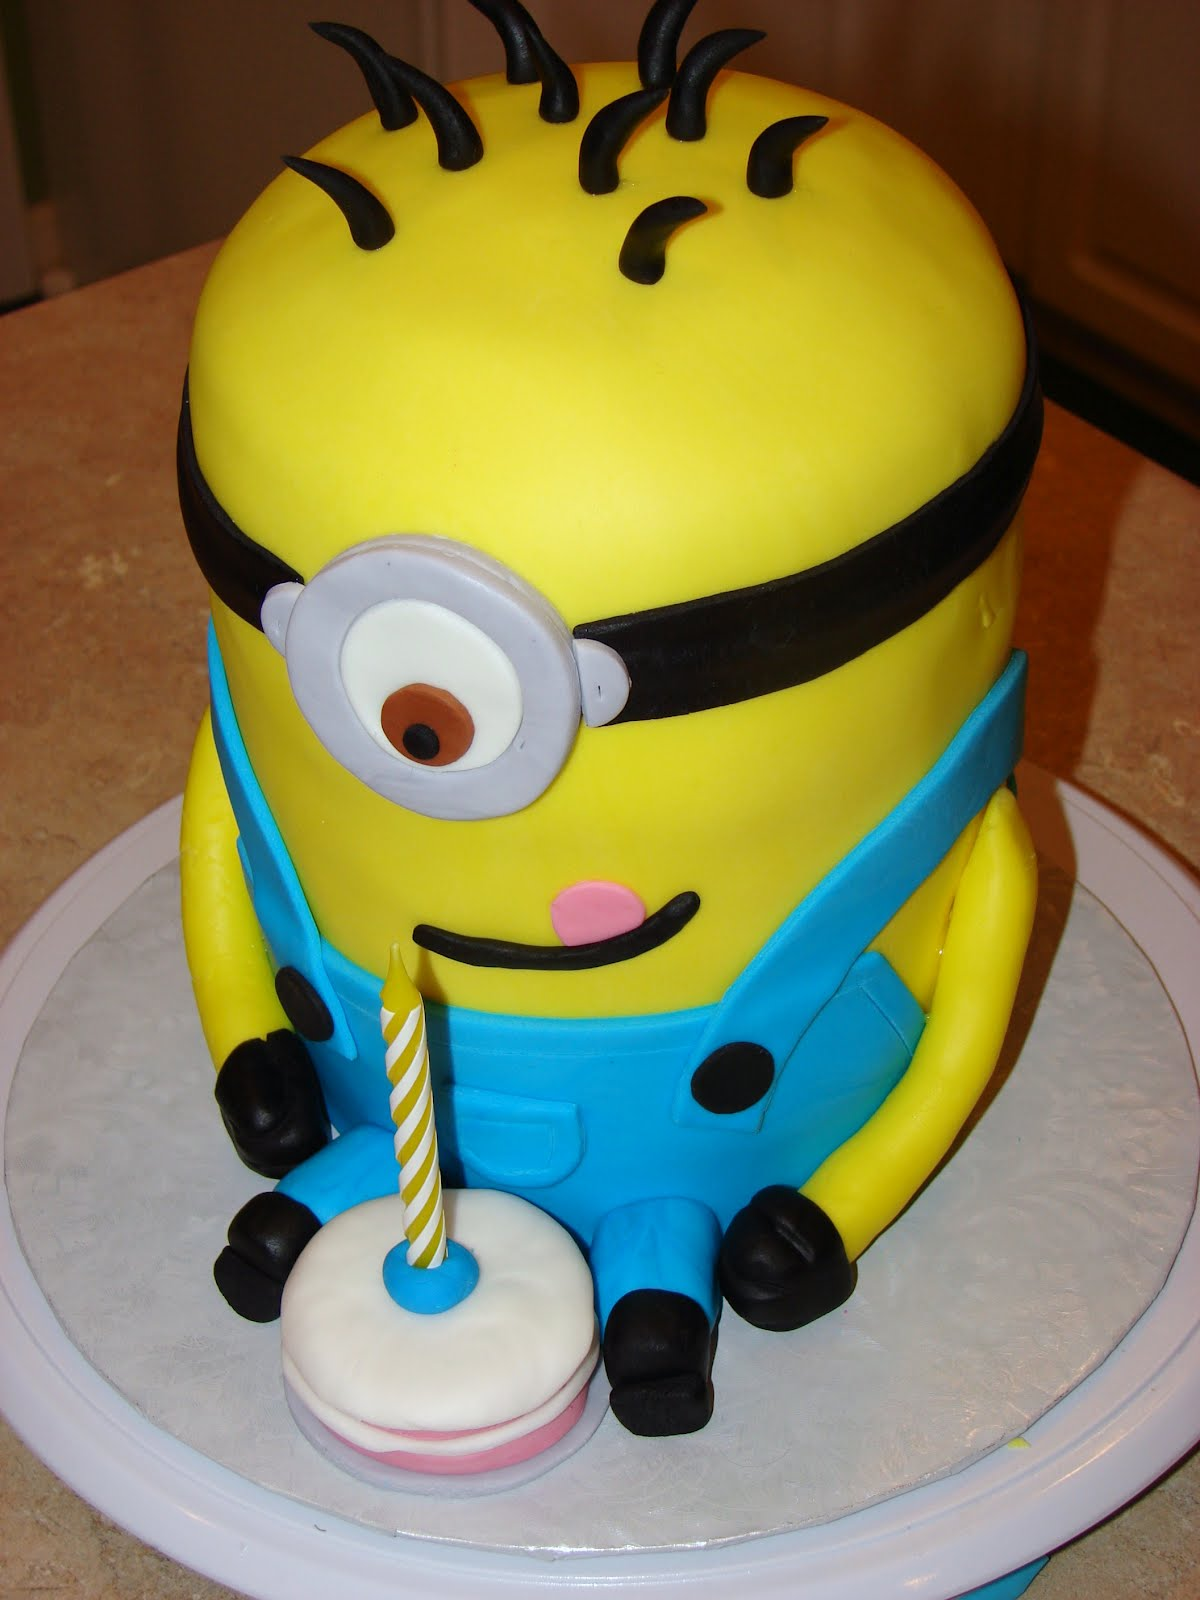 Ipsy bipsy bake shop minion cake for Minion template for cake